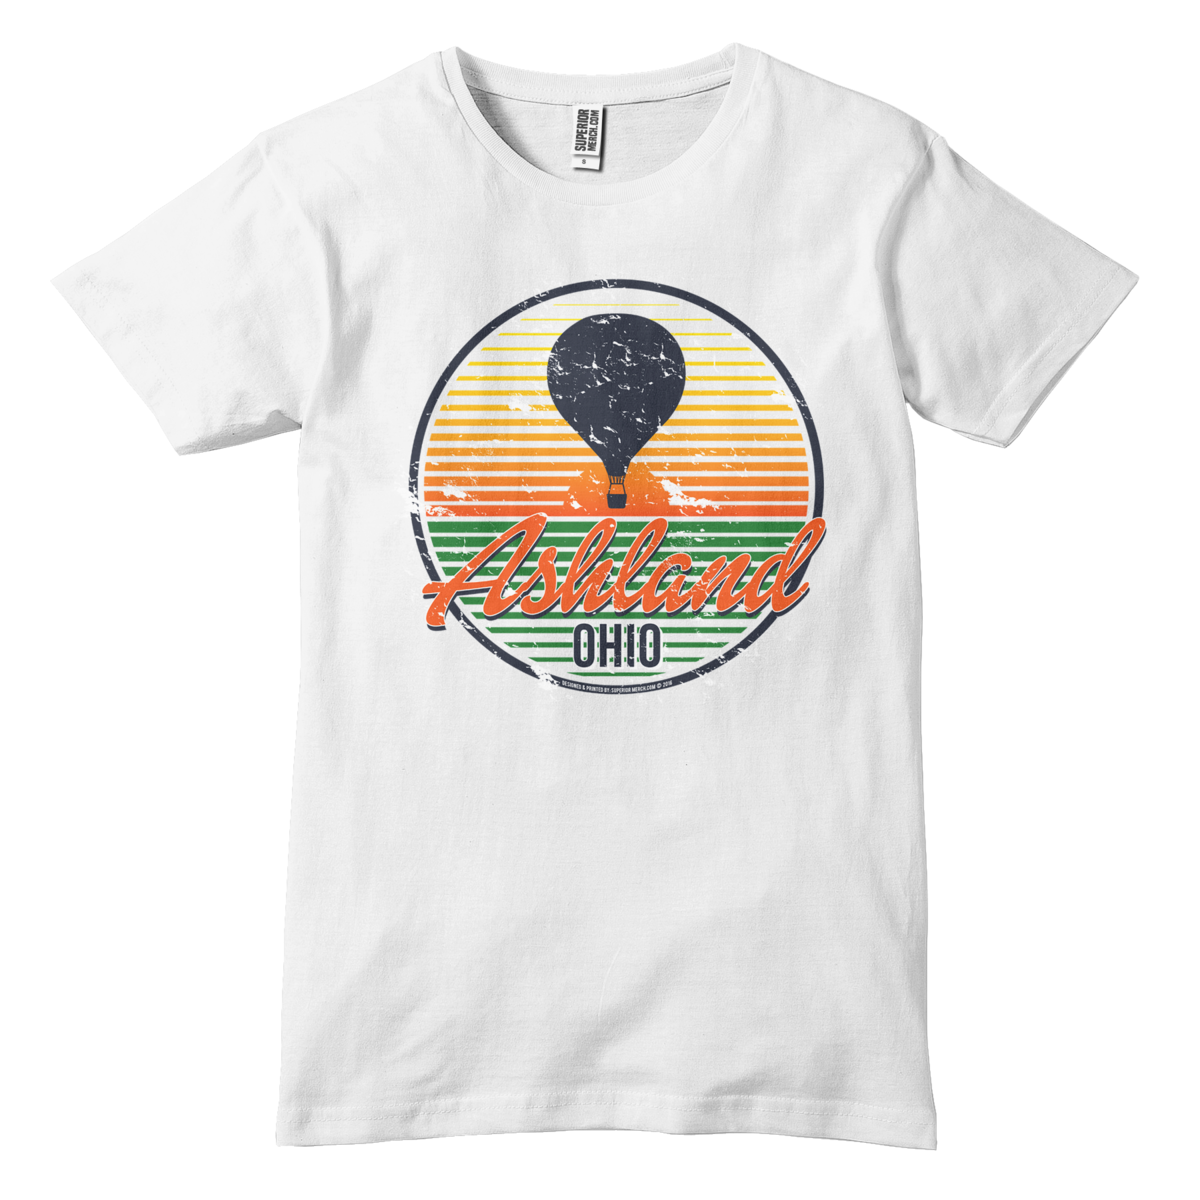 Ashland Ohio Hot Air Balloon T-Shirt